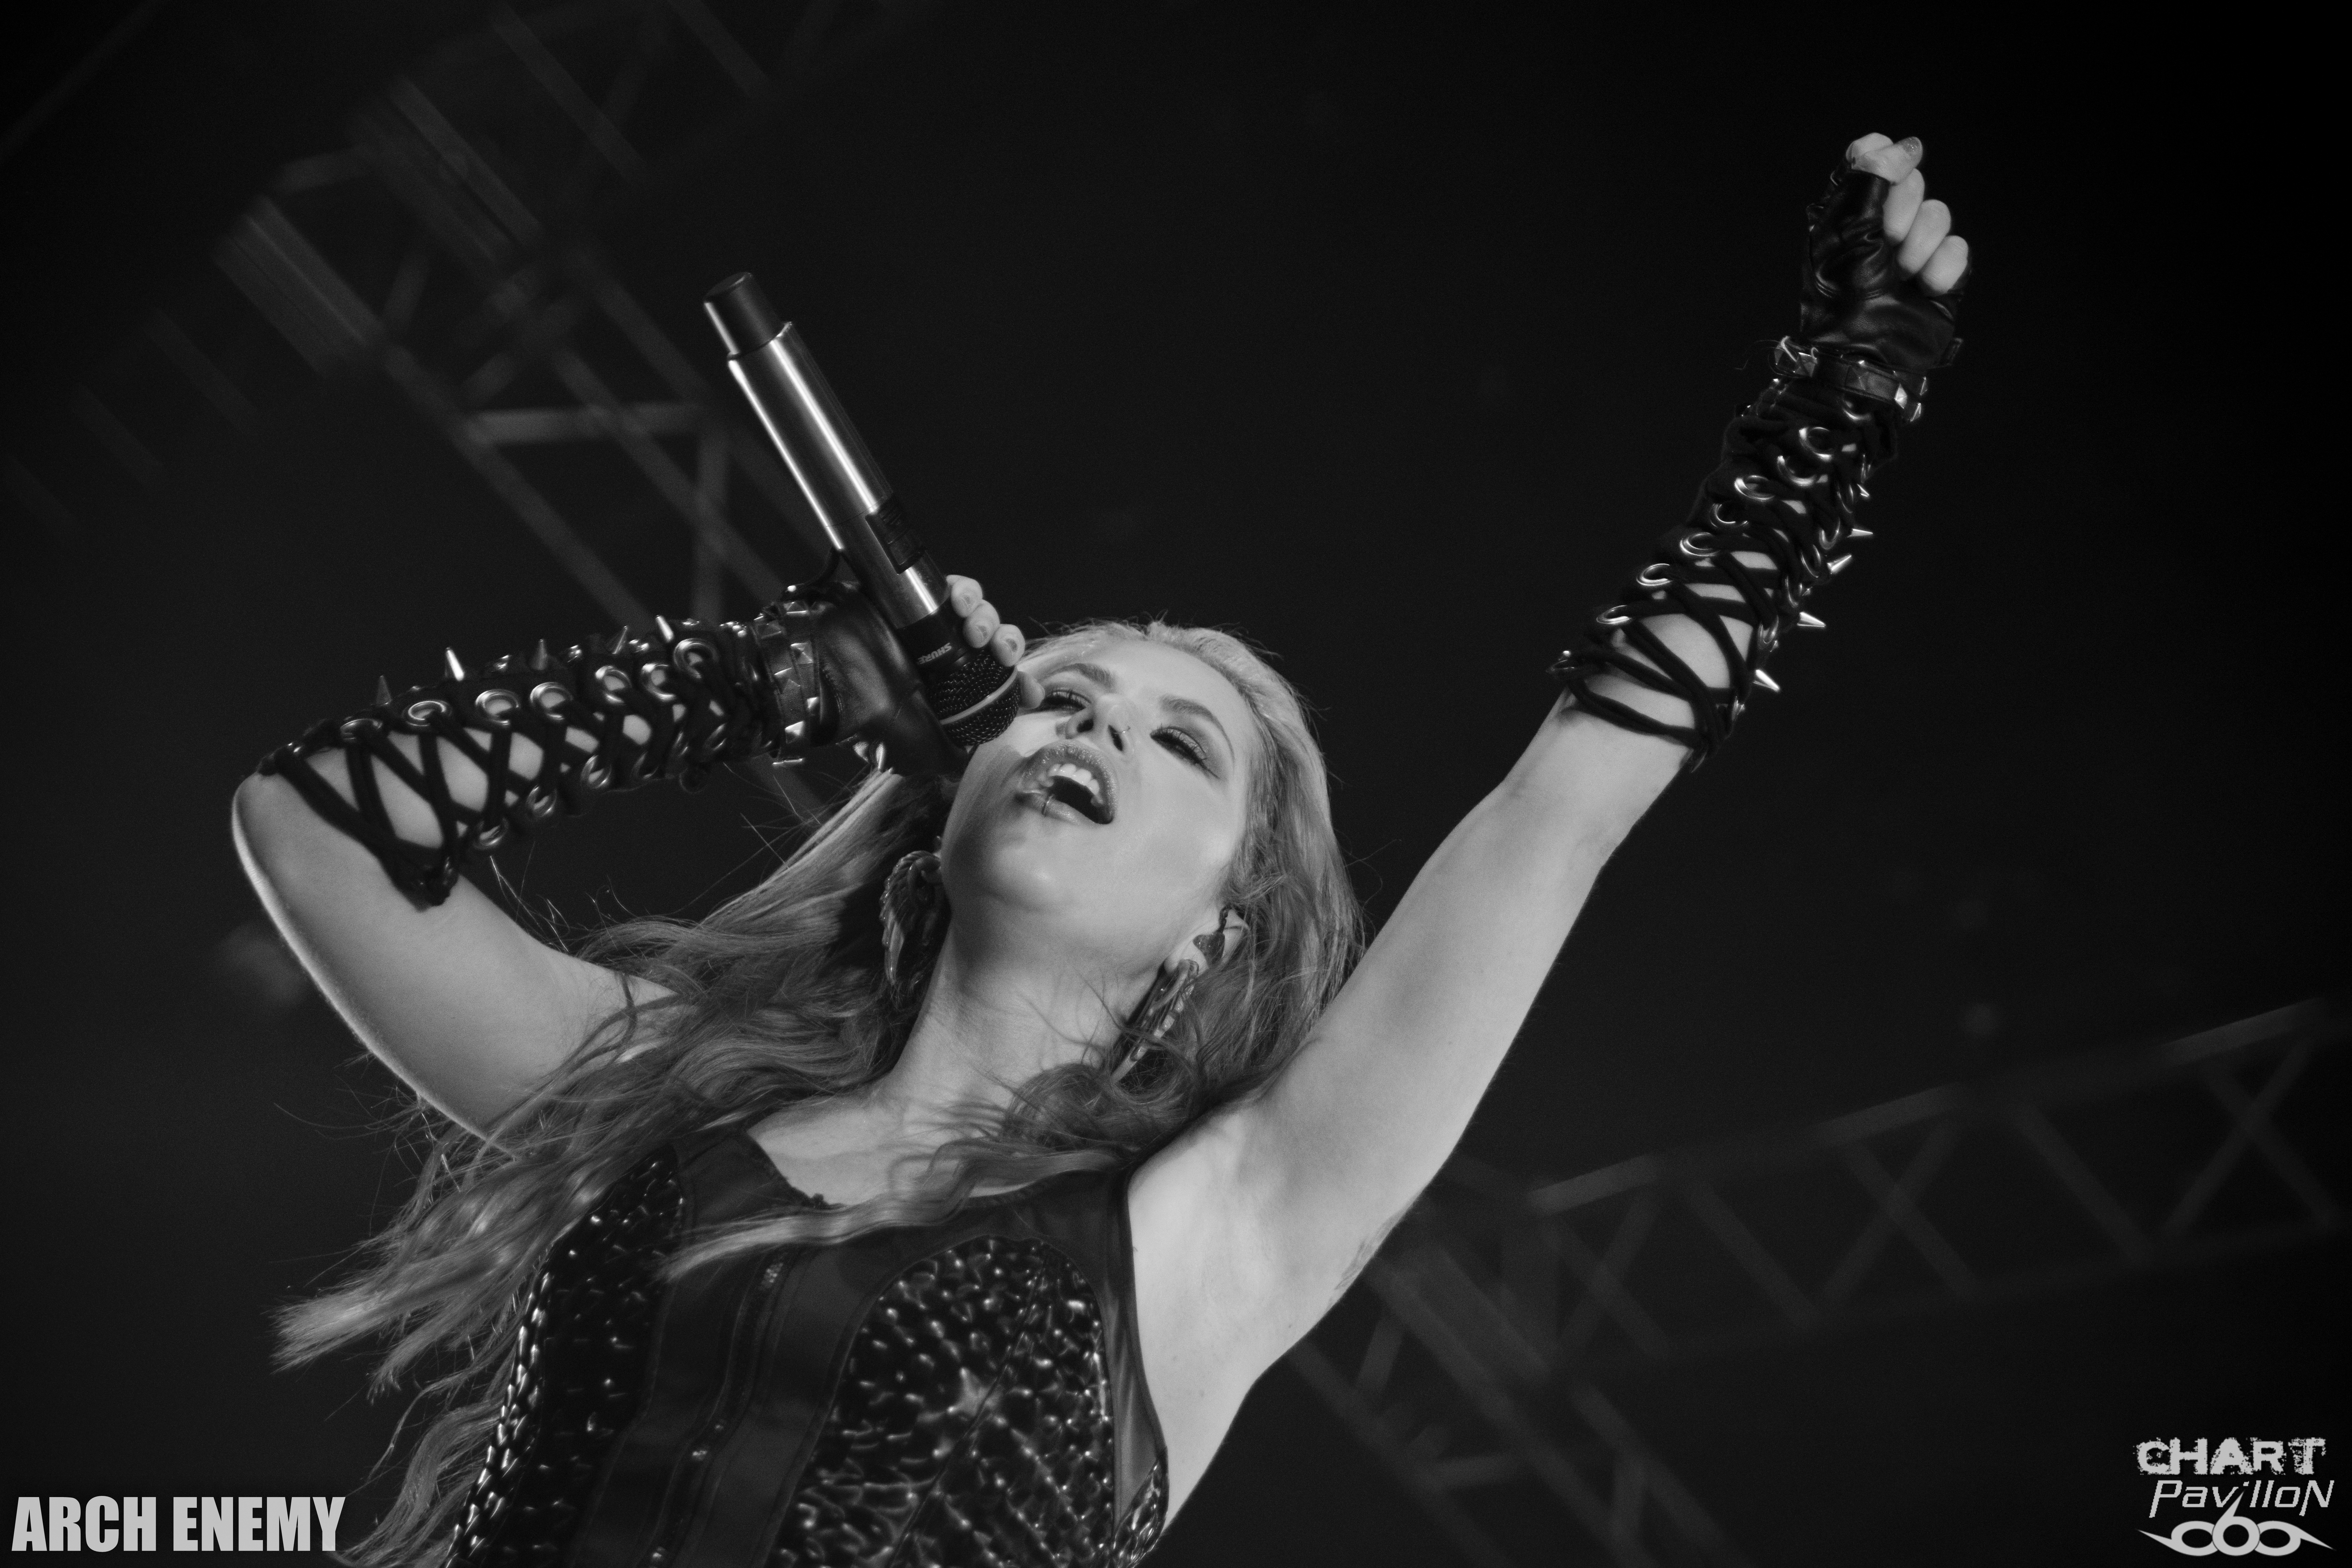 ARCH ENEMY - Lyon - Chat Photography